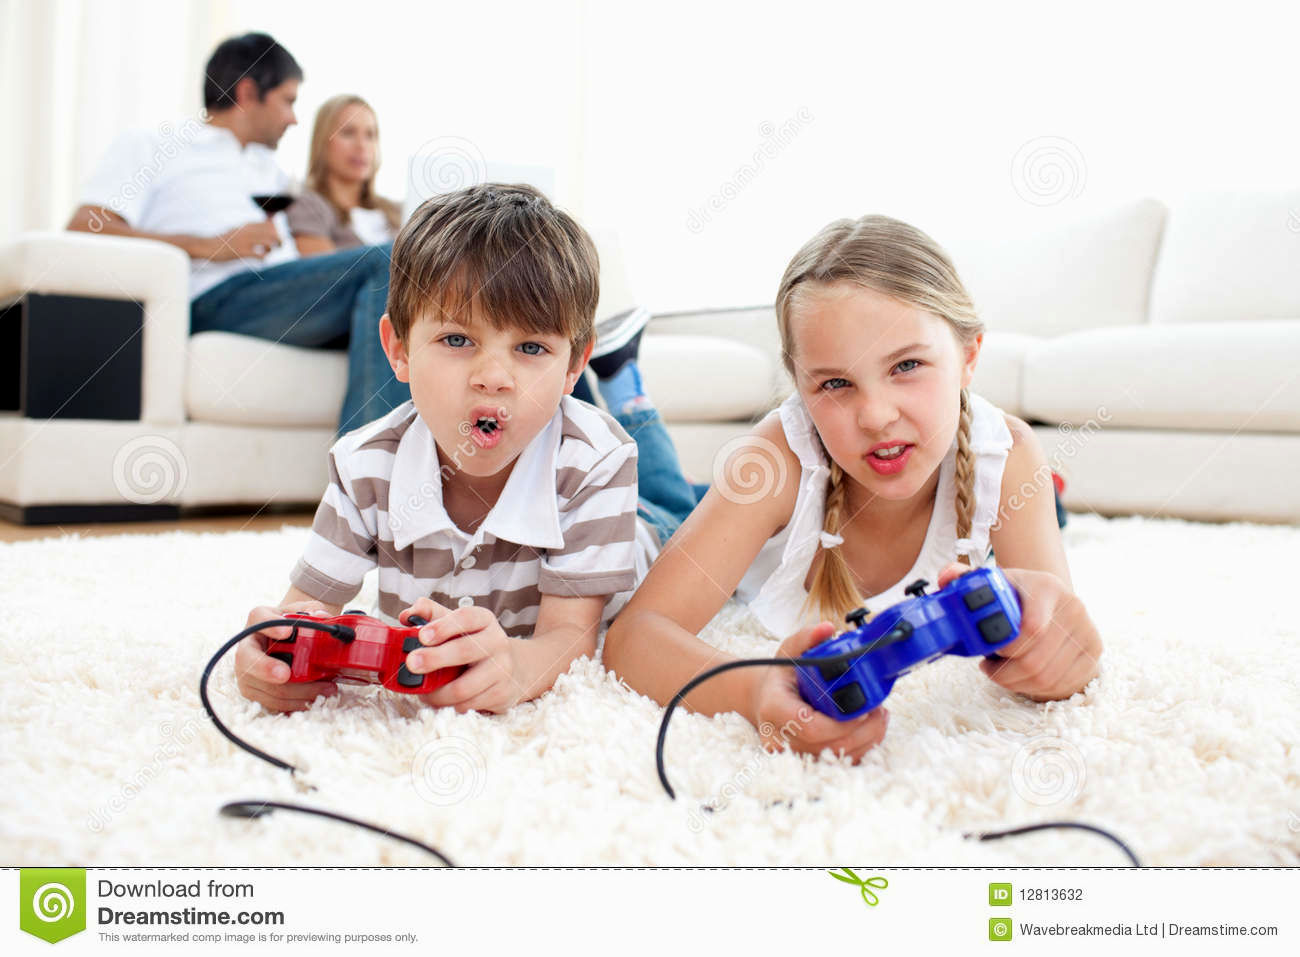 cute game room sofa portrait-Wonderful Game Room sofa Online